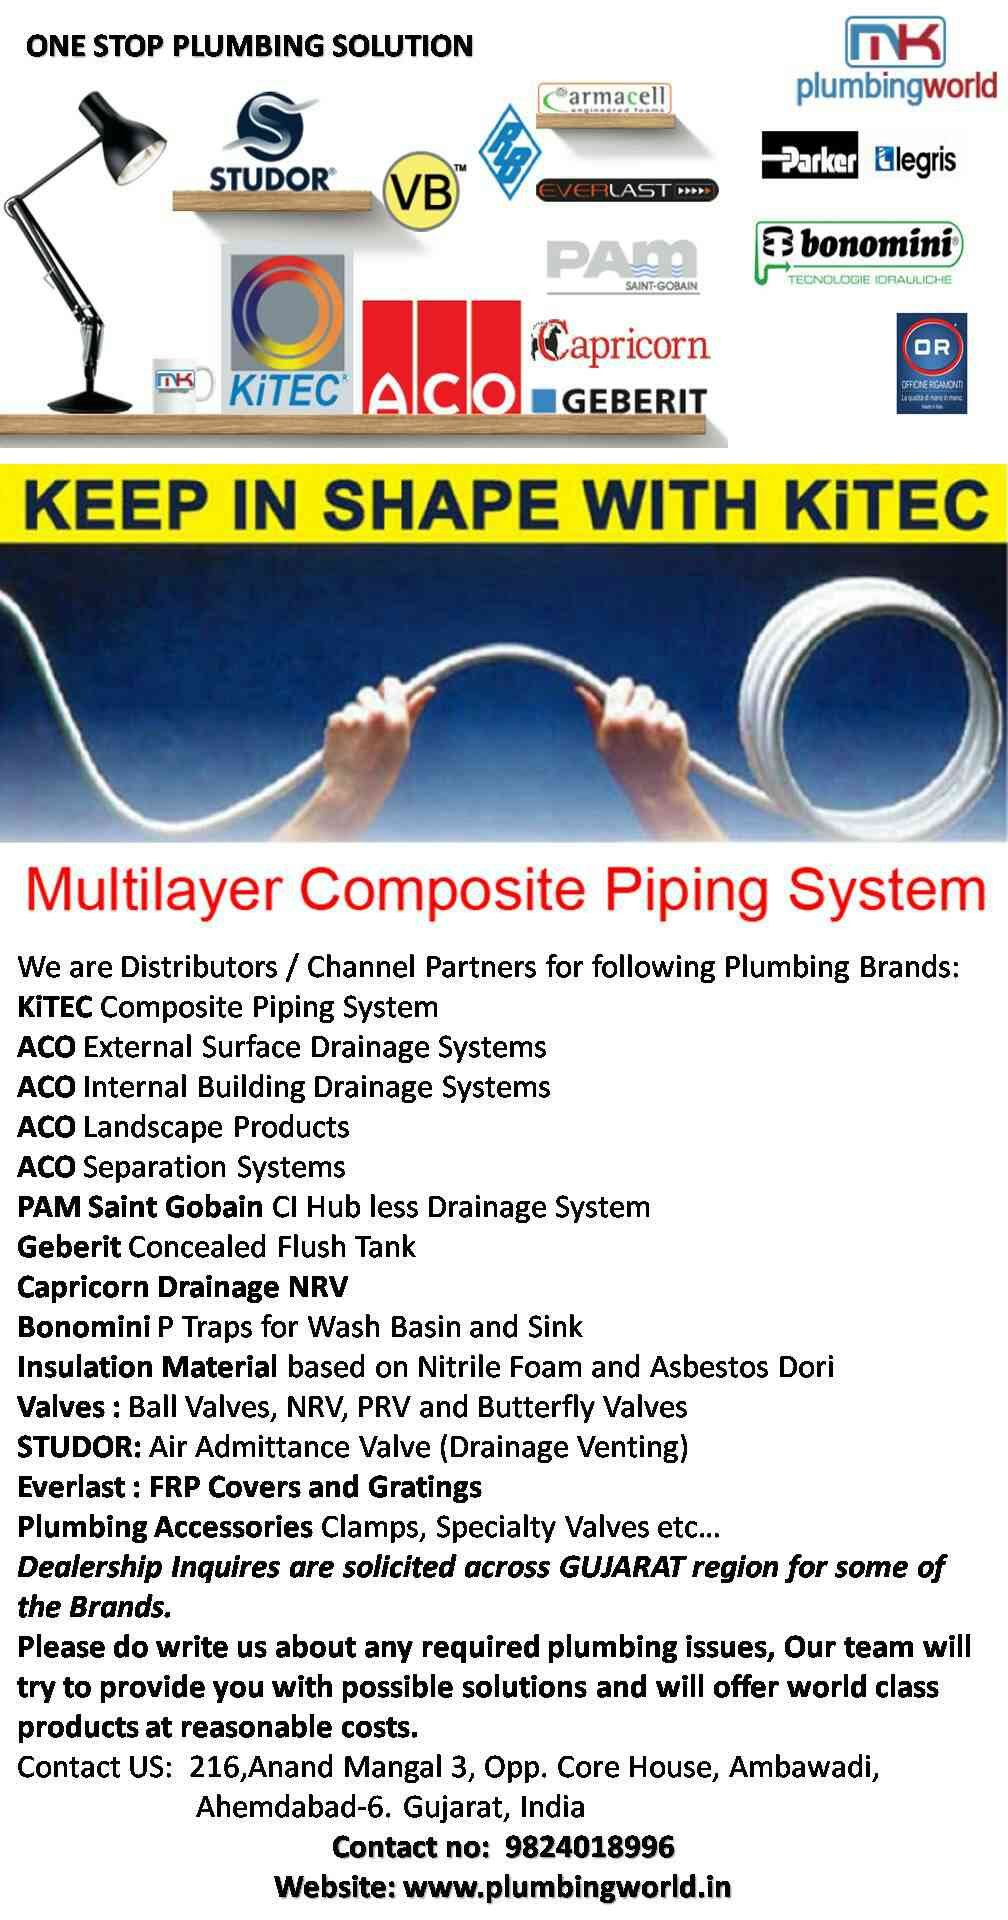 Kitec Composite Piping System